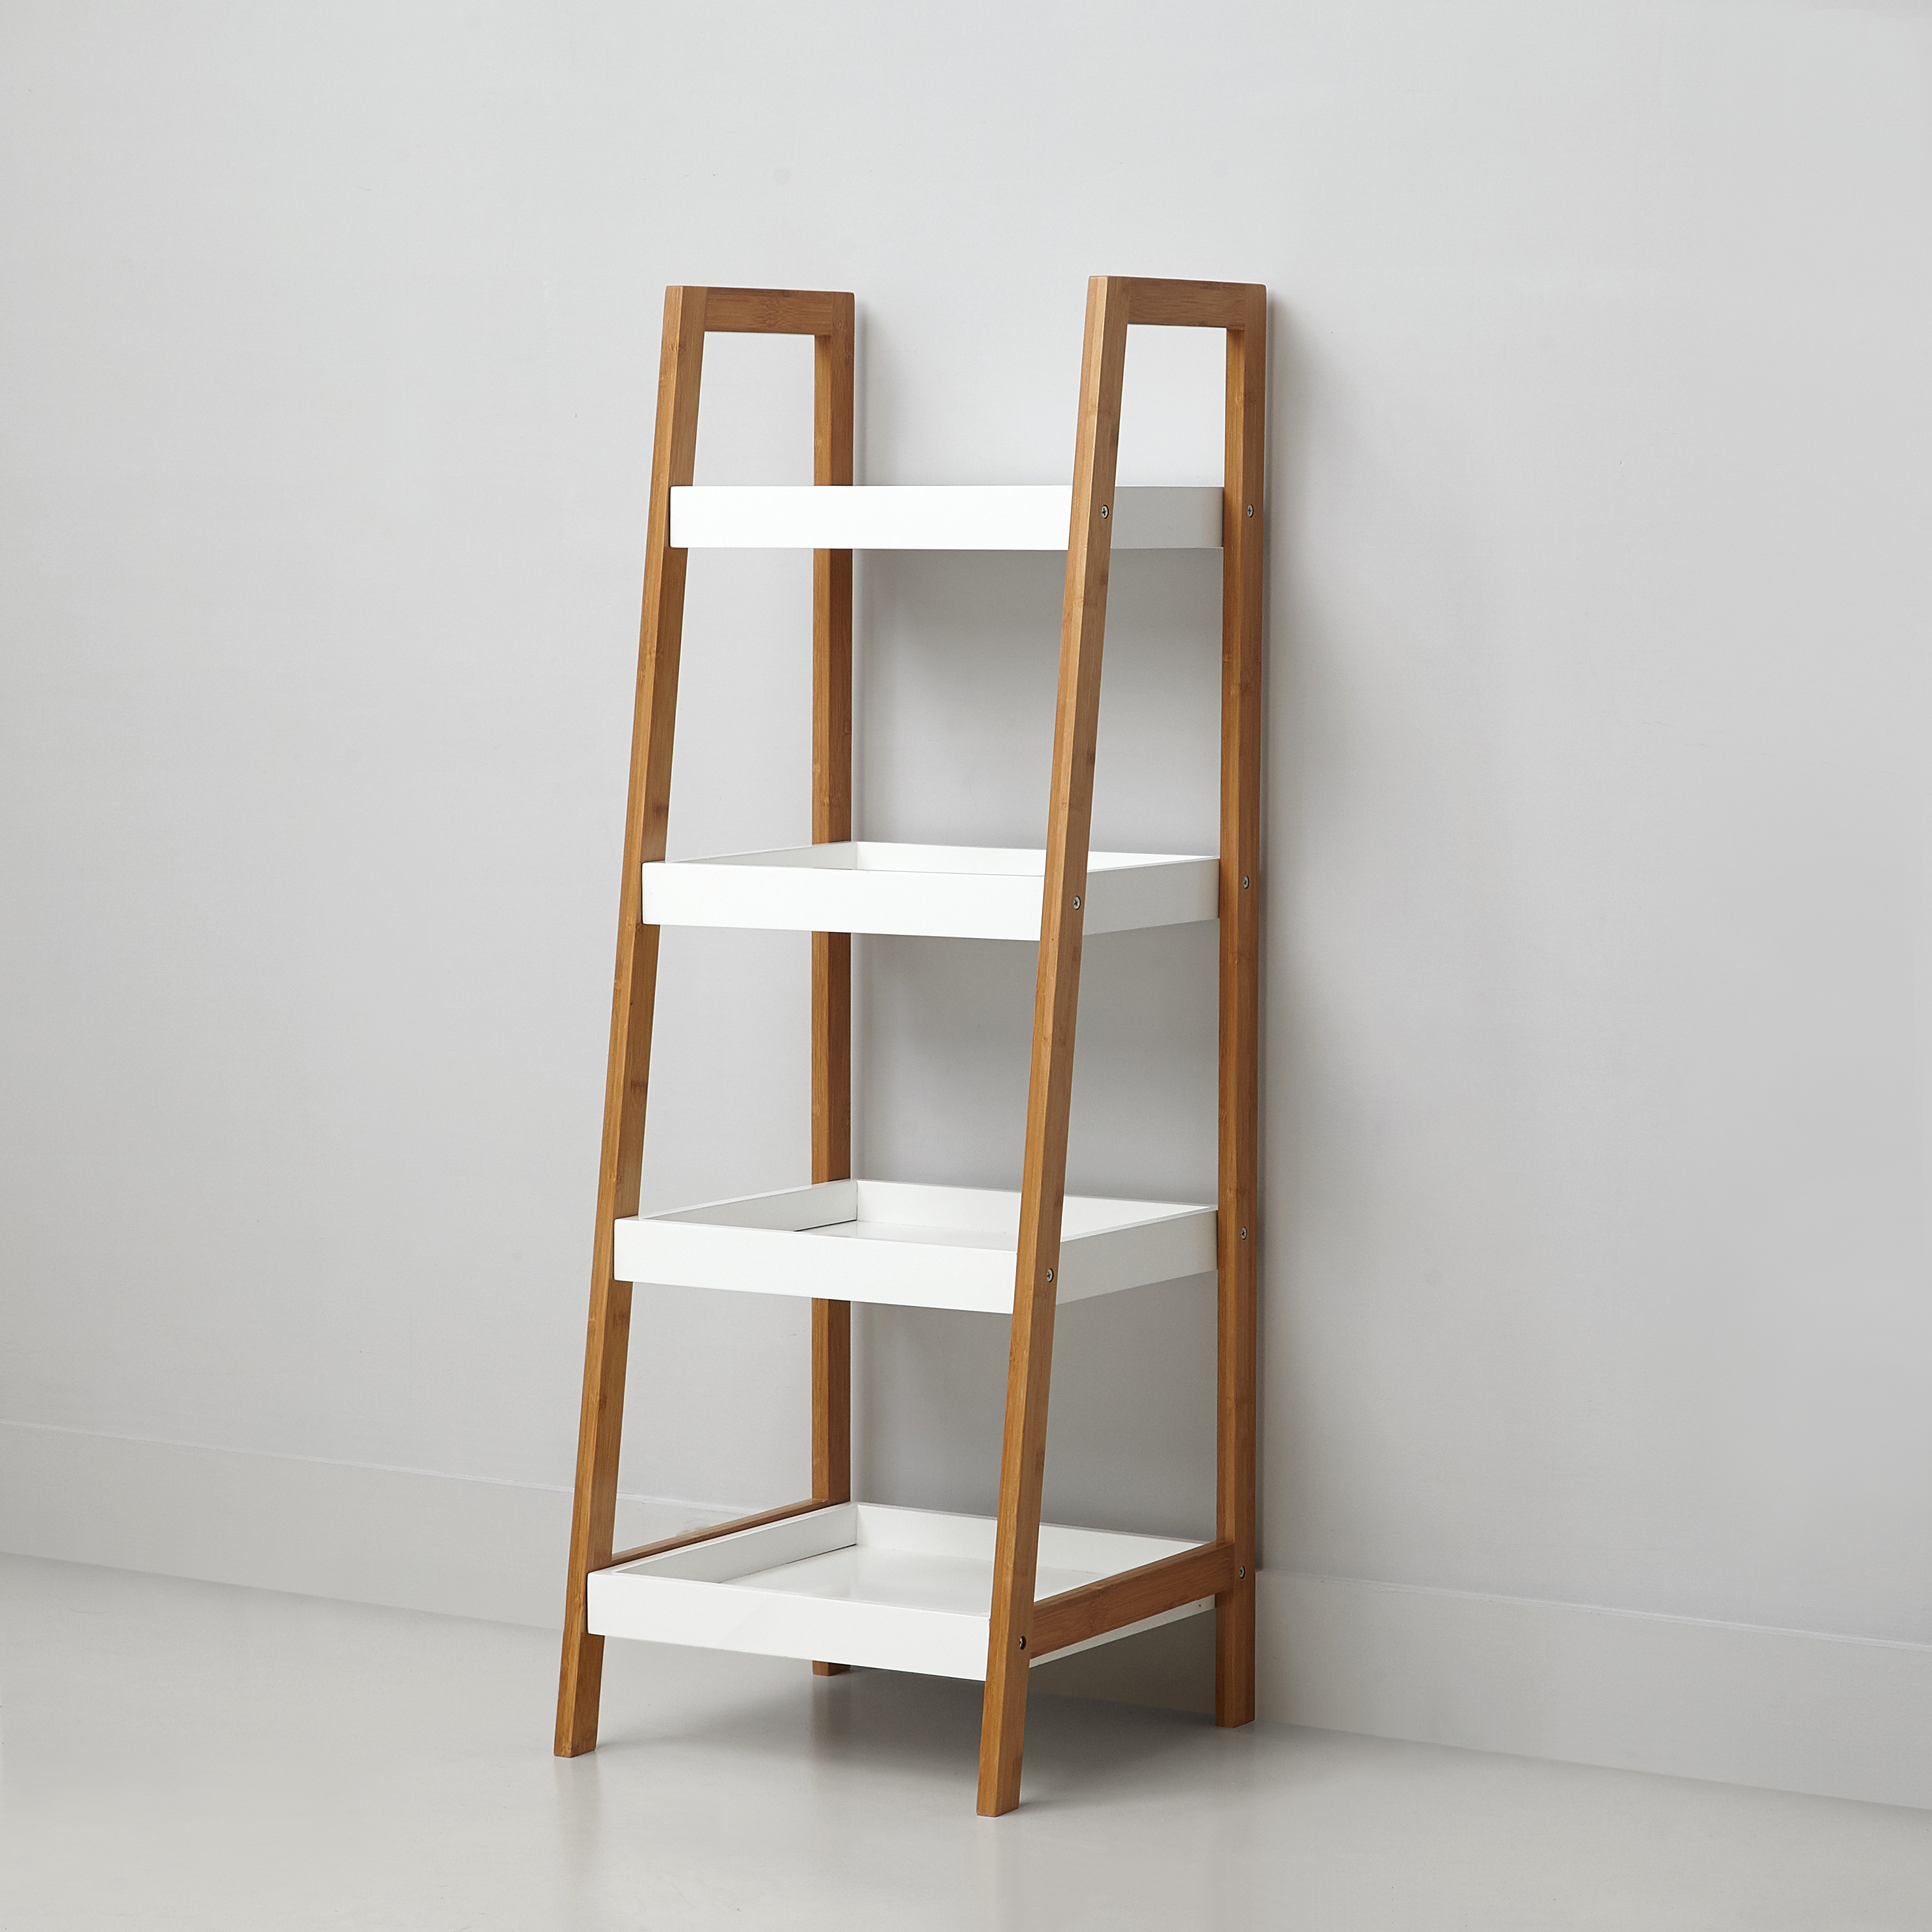 Mainstays Bamboo Collection 4 Tier Shelf, White